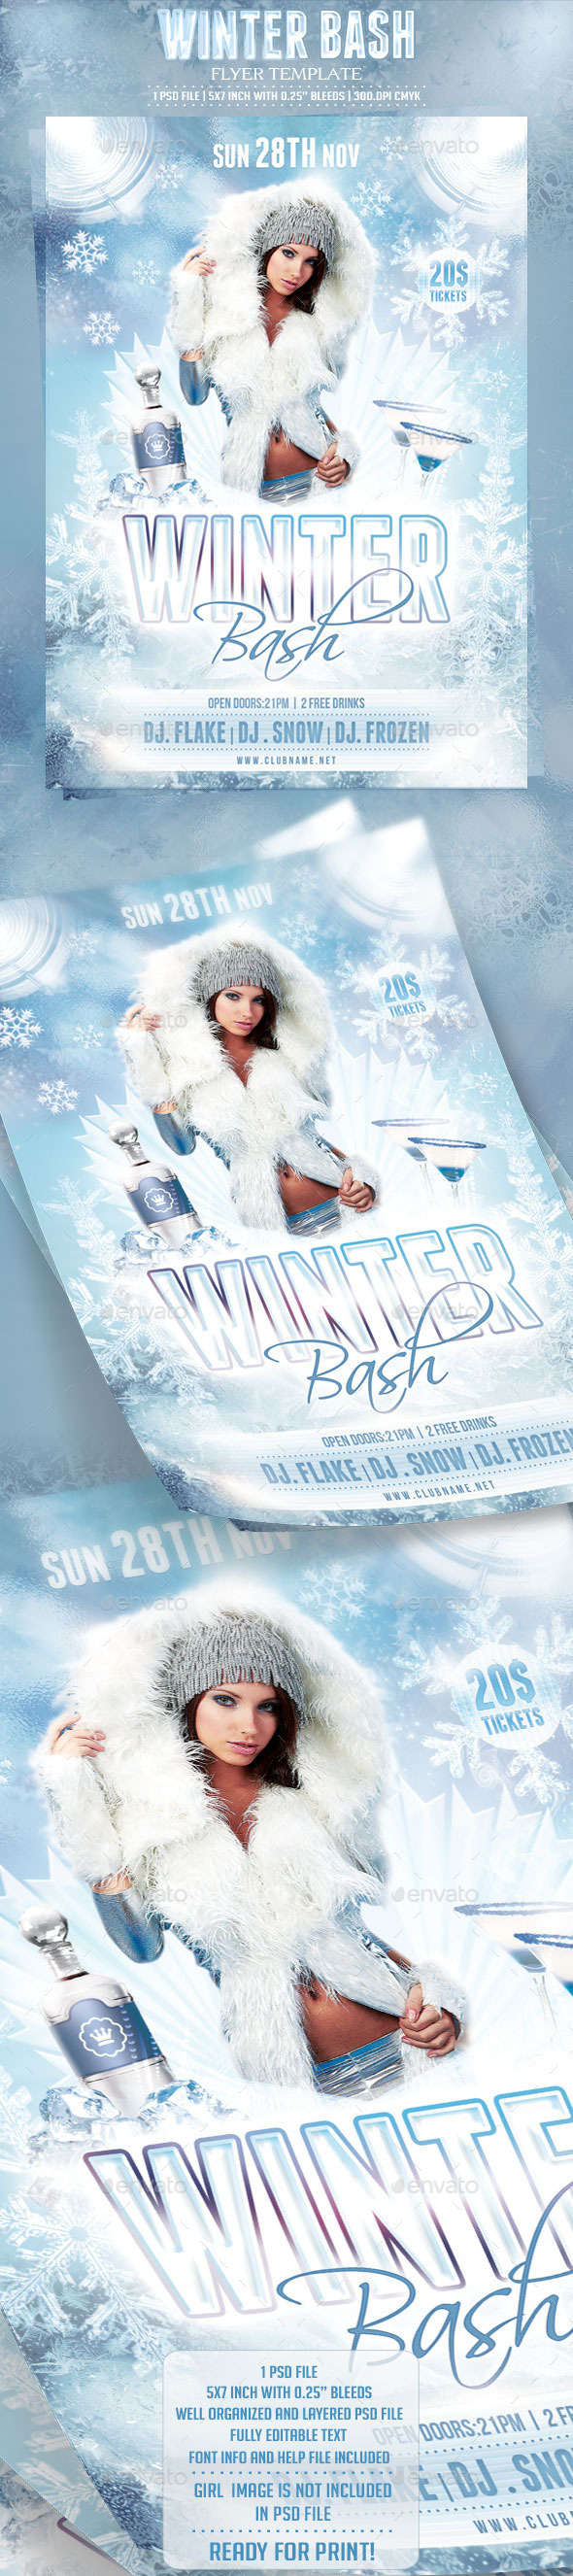 Winter Bash Flyer Template - Clubs & Parties Events